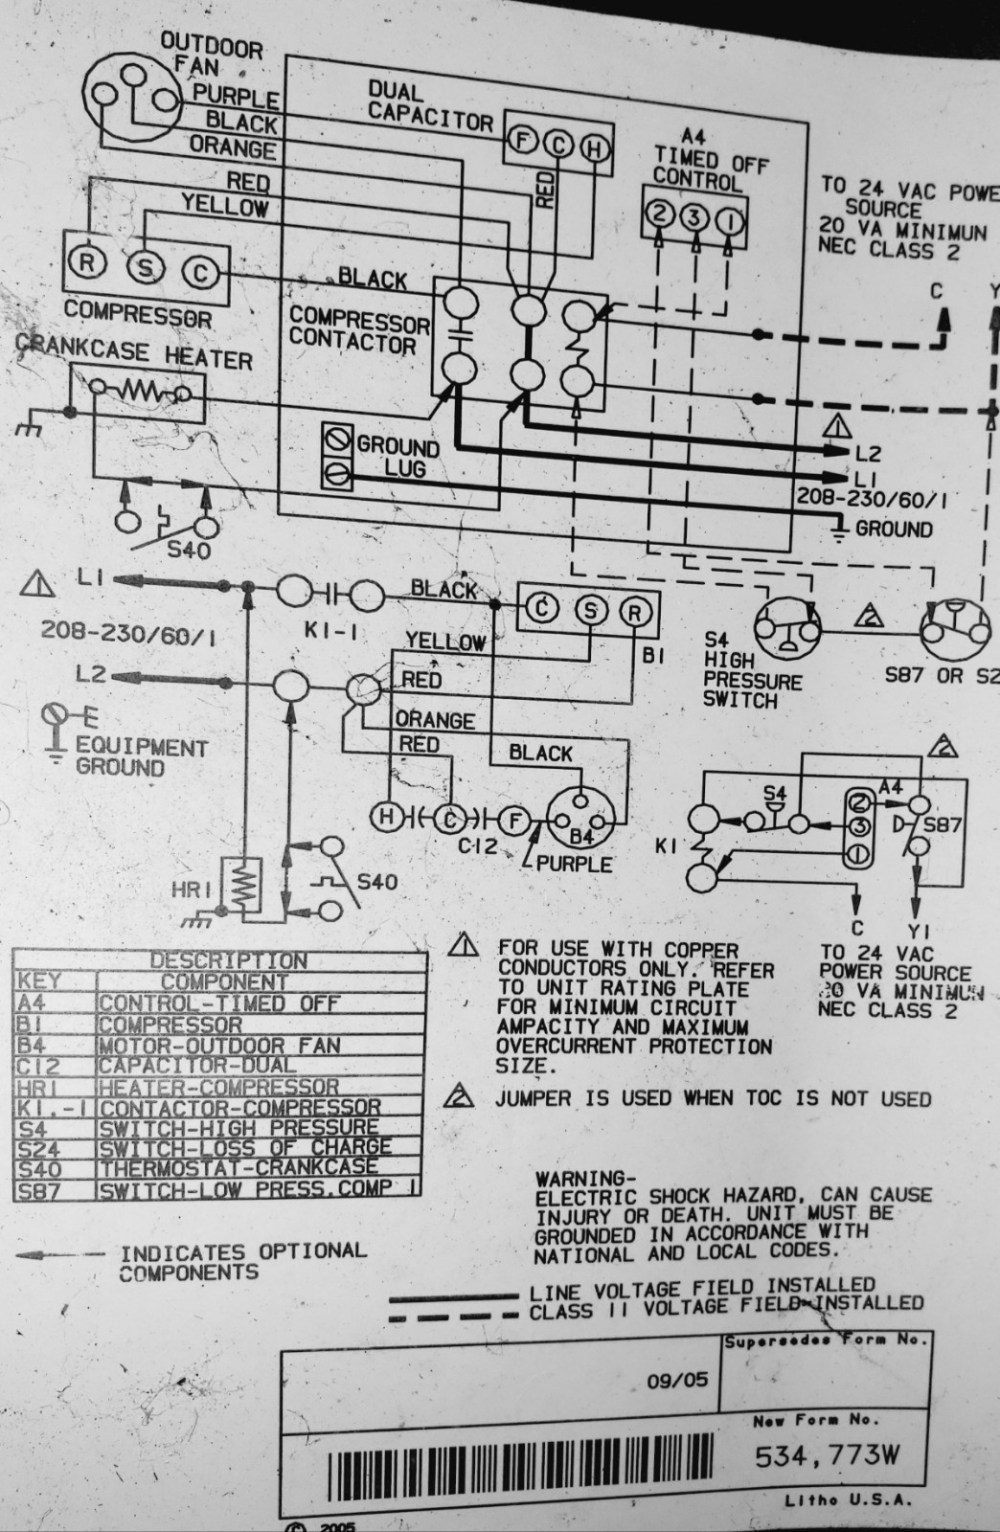 medium resolution of wiring diagram from inside the unit ref c12 air conditioning compressor capacitor resistance